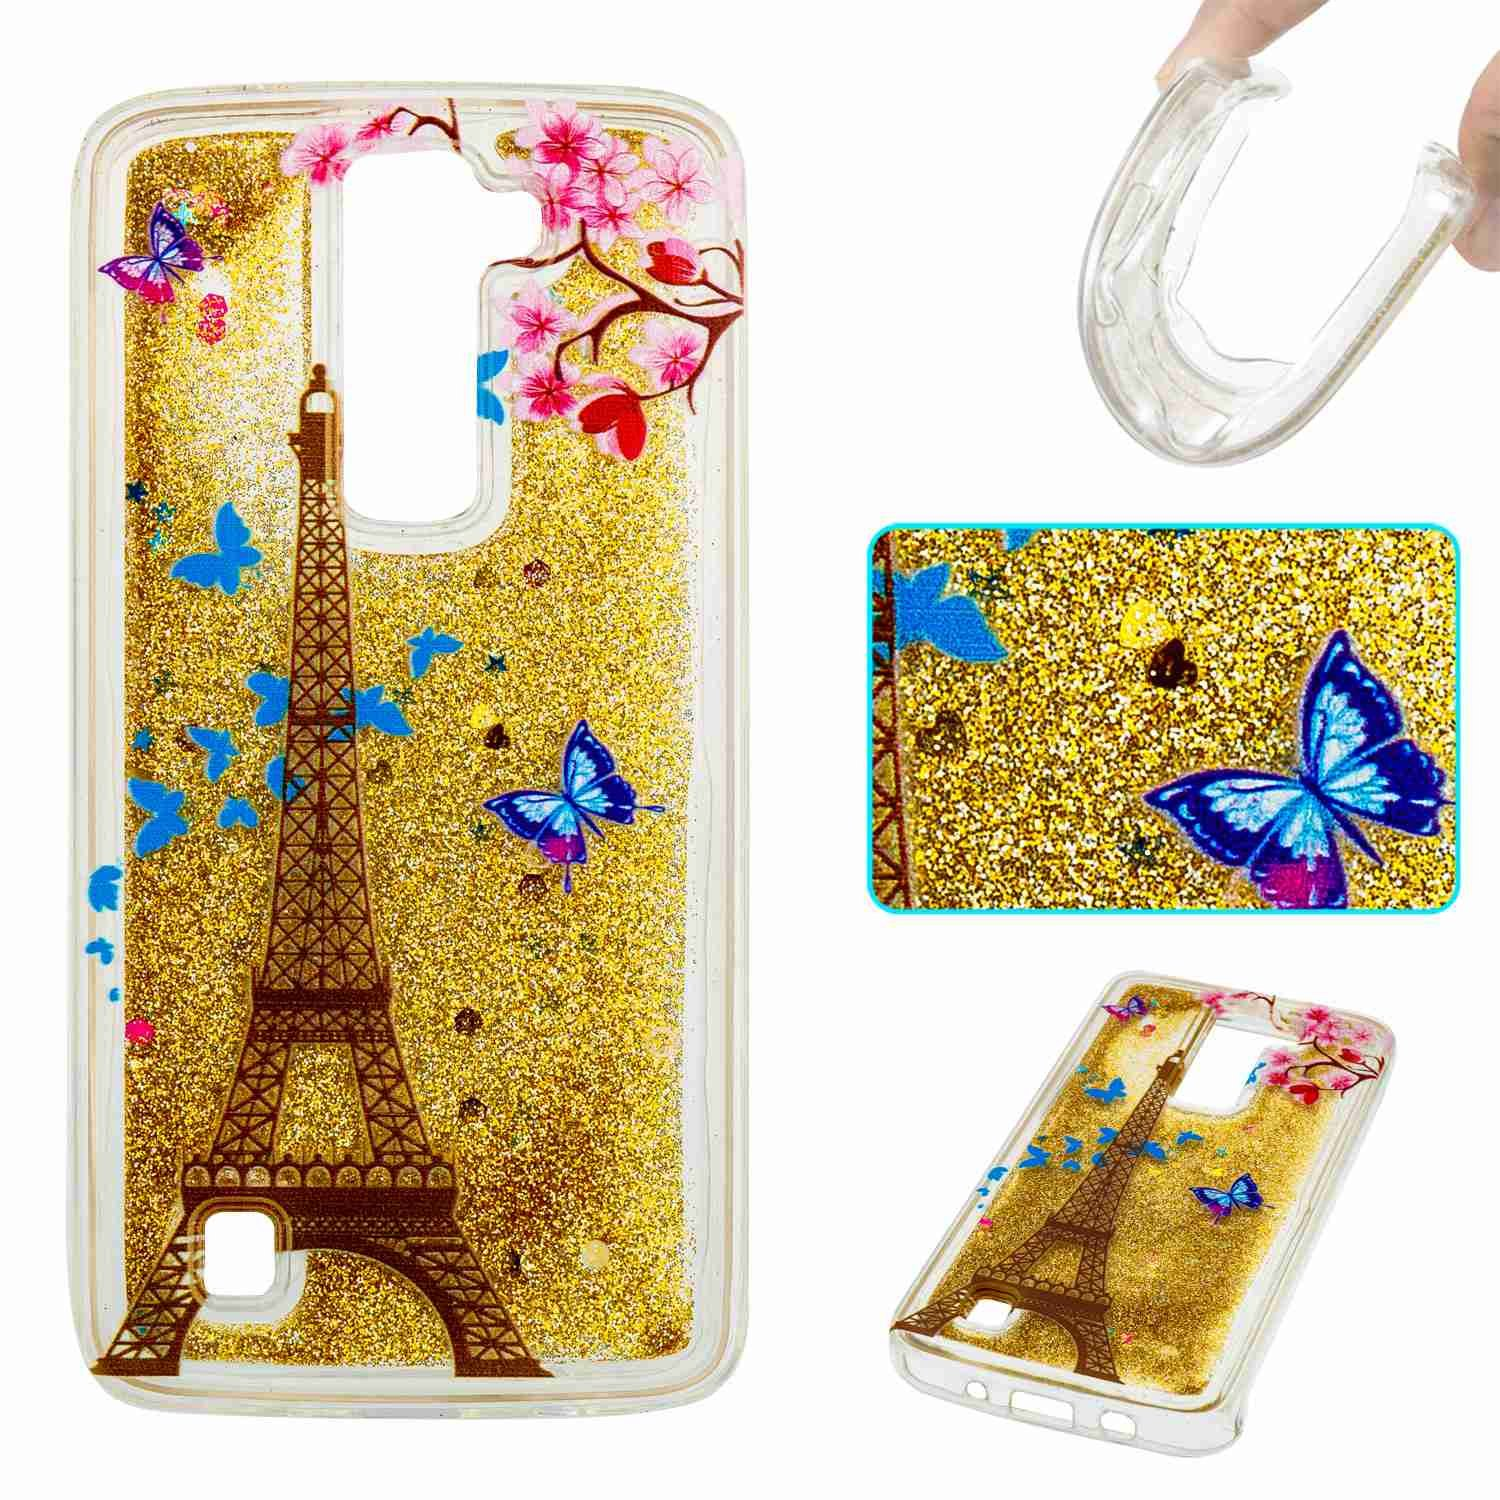 STENES LG K8 Case, 3D Luxury Bling Glitter Sparkle Liquid Case Infused Glitter Stars Moving Quicksand Soft Case For LG Phoenix 2 /Escape 3 /LG K8 (2016) - Gold Eiffel Tower Butterfly Flowers